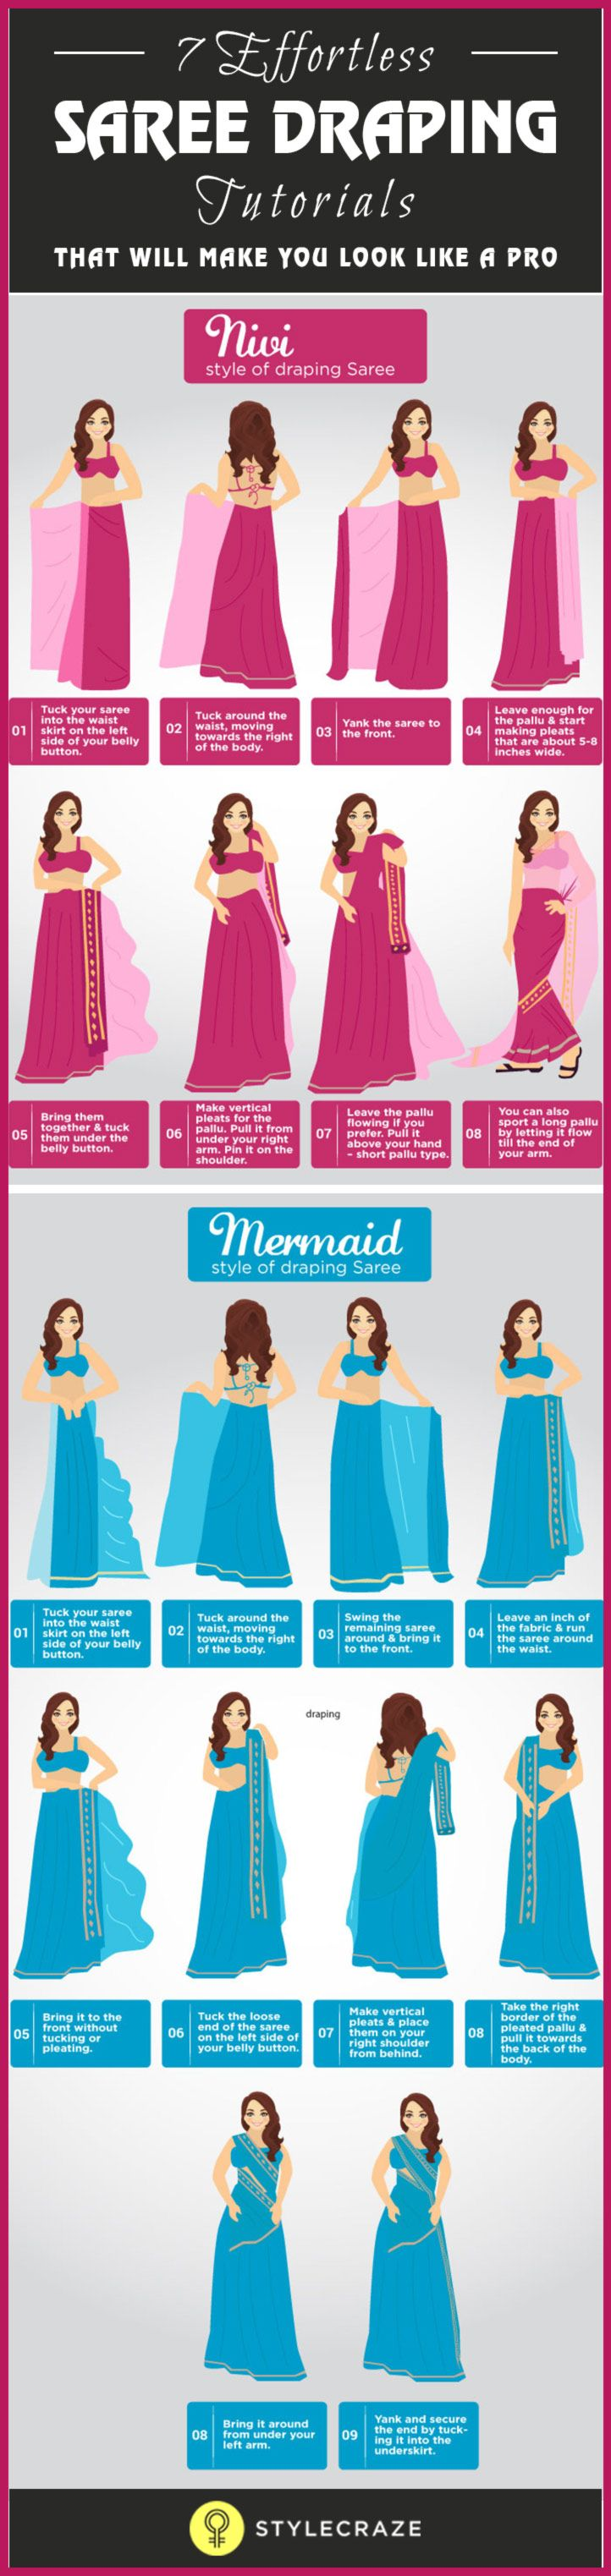 Dress up laundry kebon jeruk - Are You A Beginner Looking For Help Or A Saree Veteran Scouting For Different